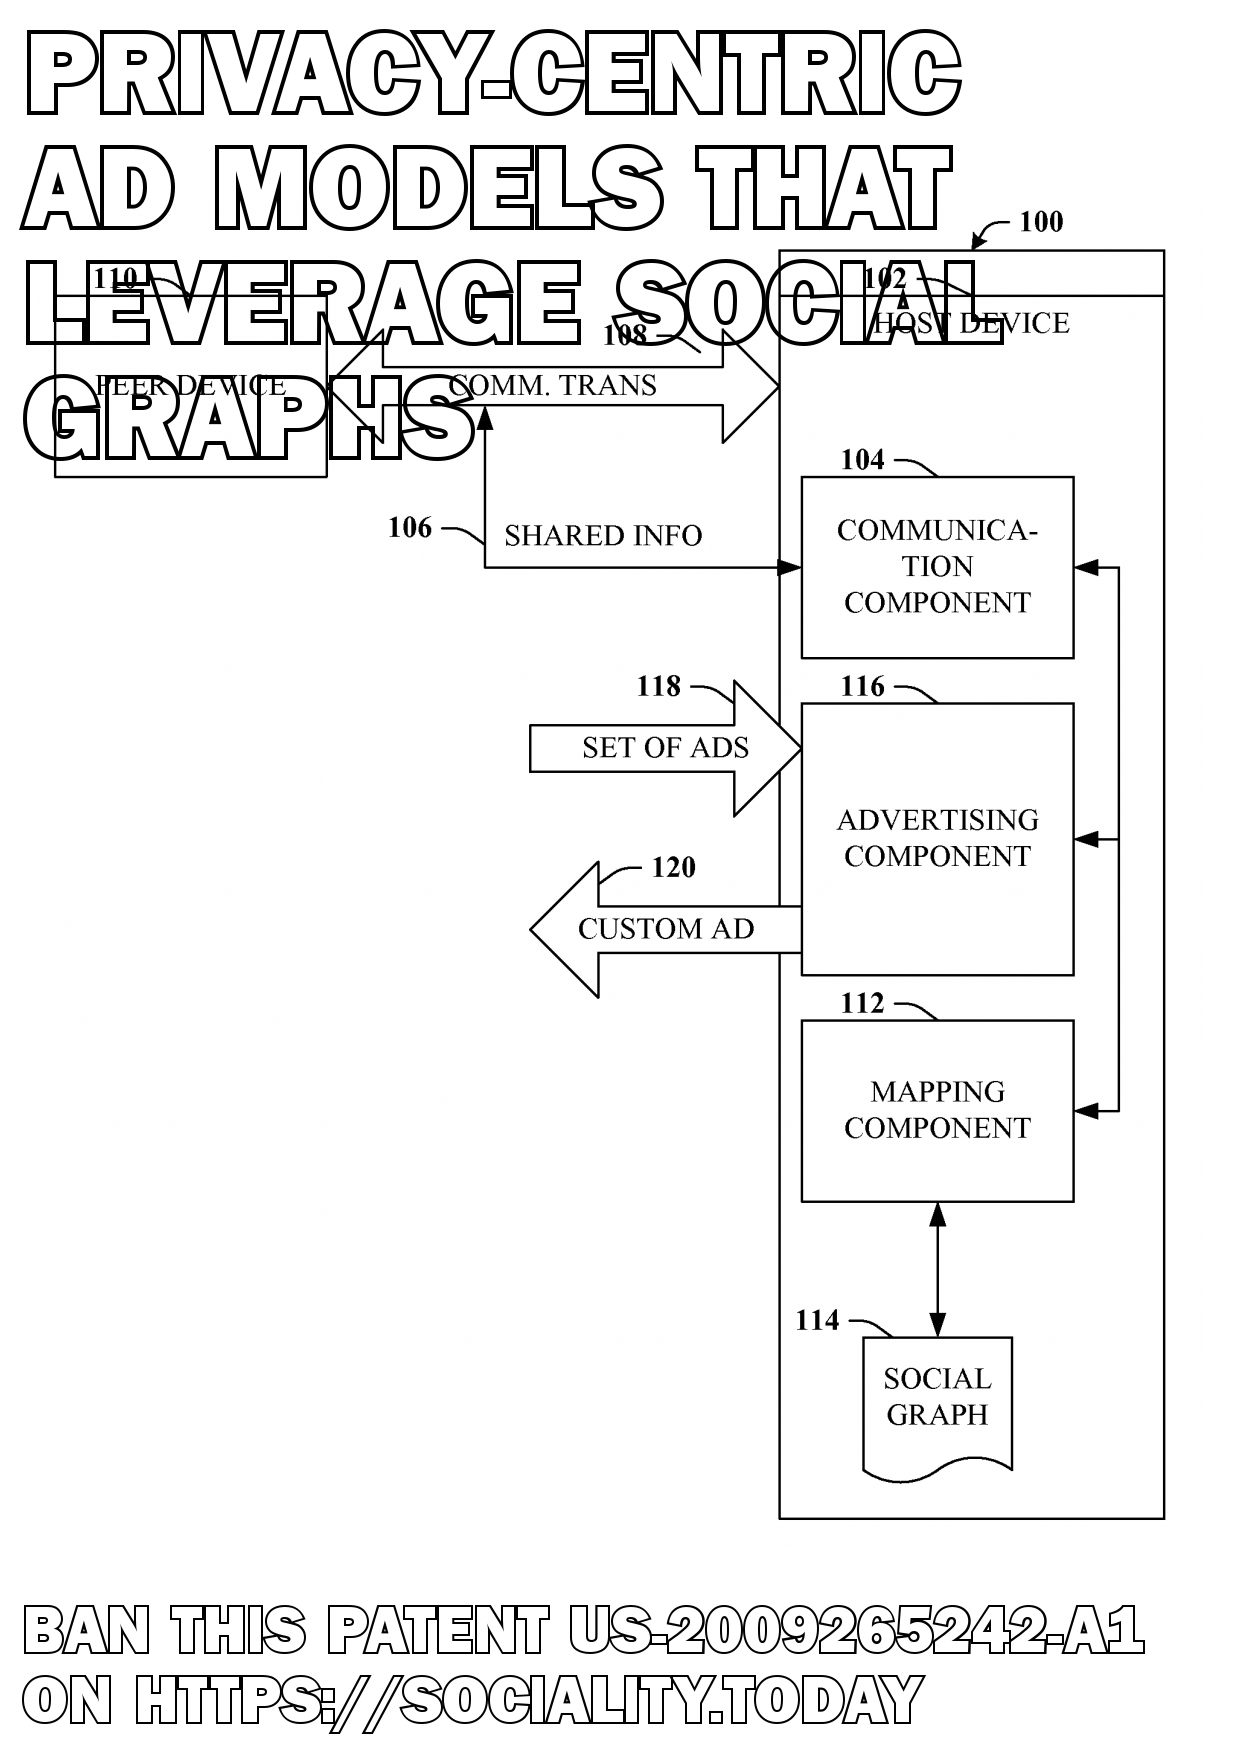 Privacy-centric ad models that leverage social graphs  - US-2009265242-A1